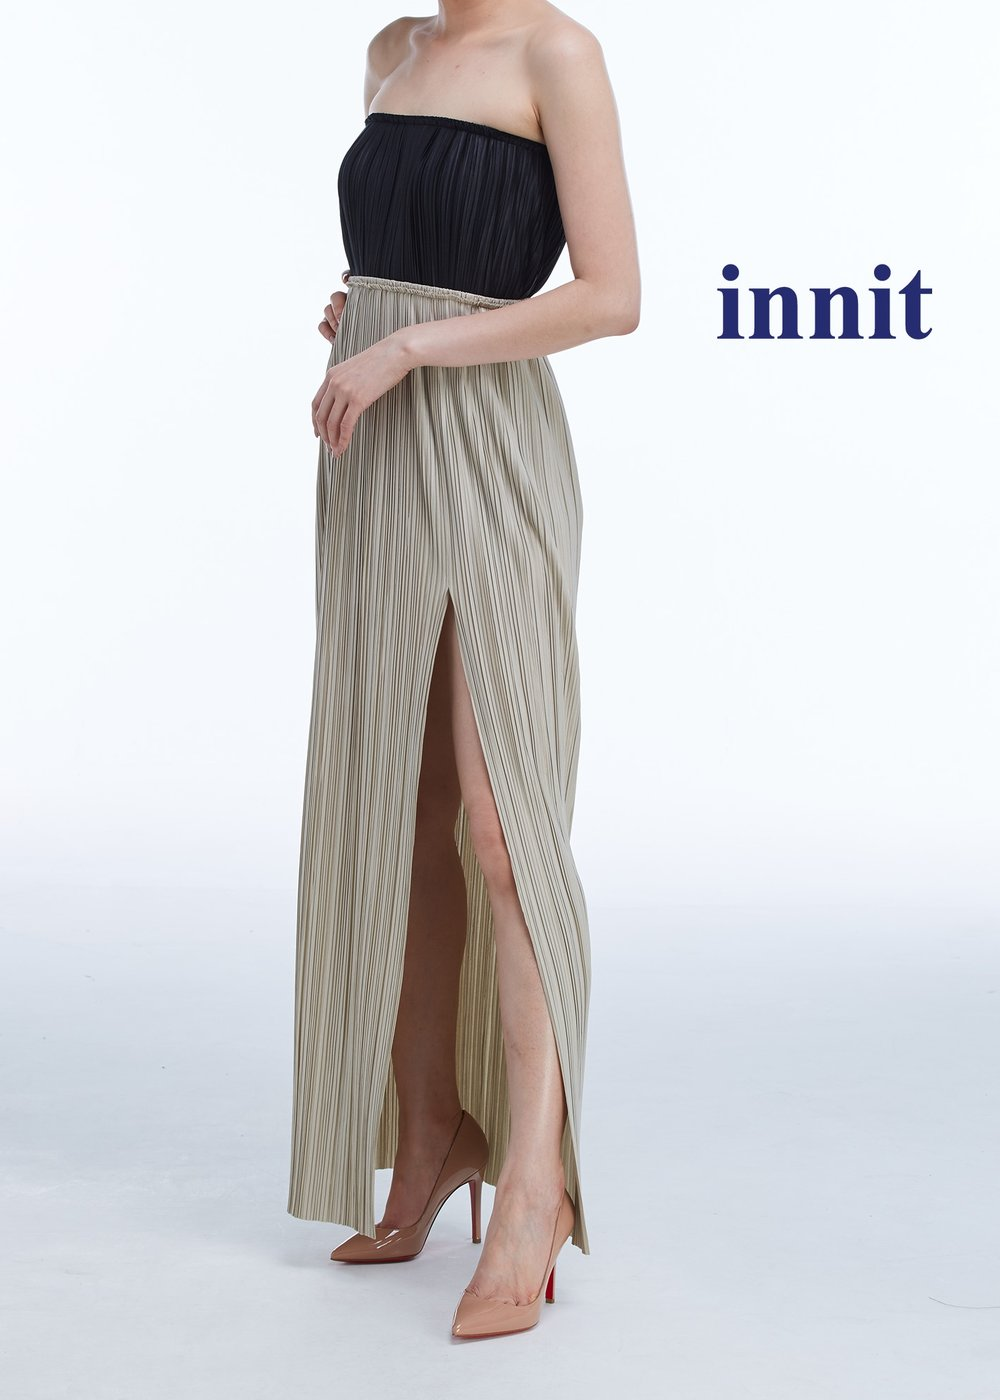 SLIT SKIRT   Pleated Skirt  worn as a top